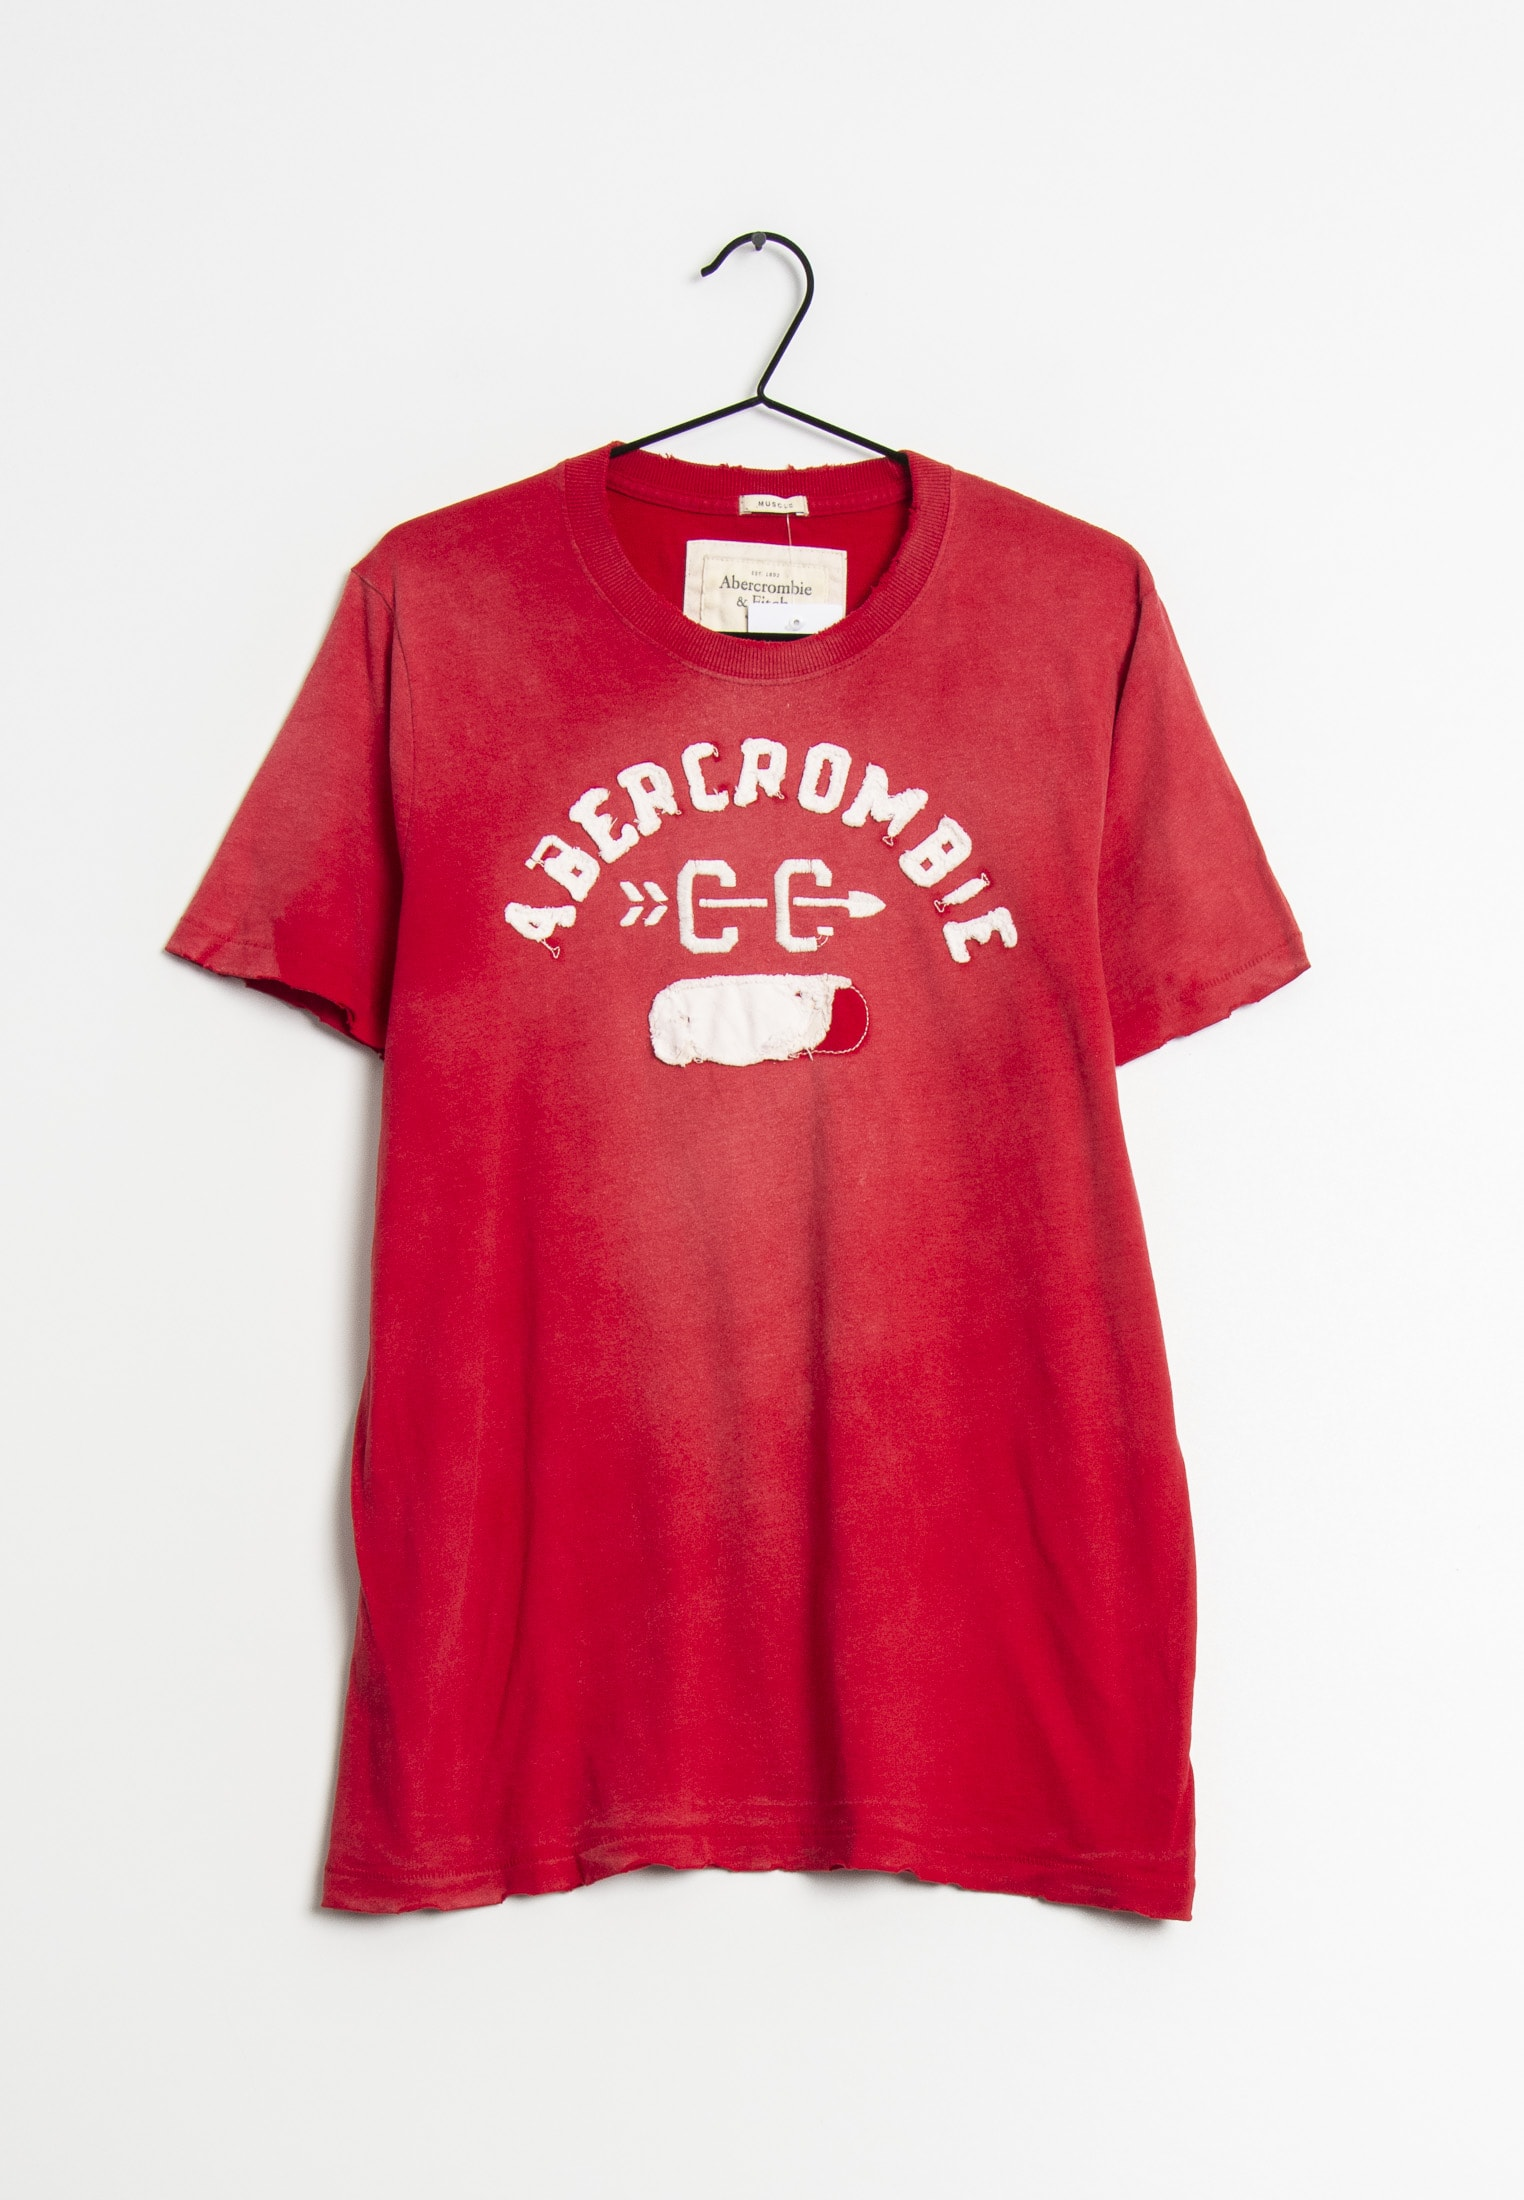 Abercrombie & Fitch T-Shirt Rot Gr.XXL